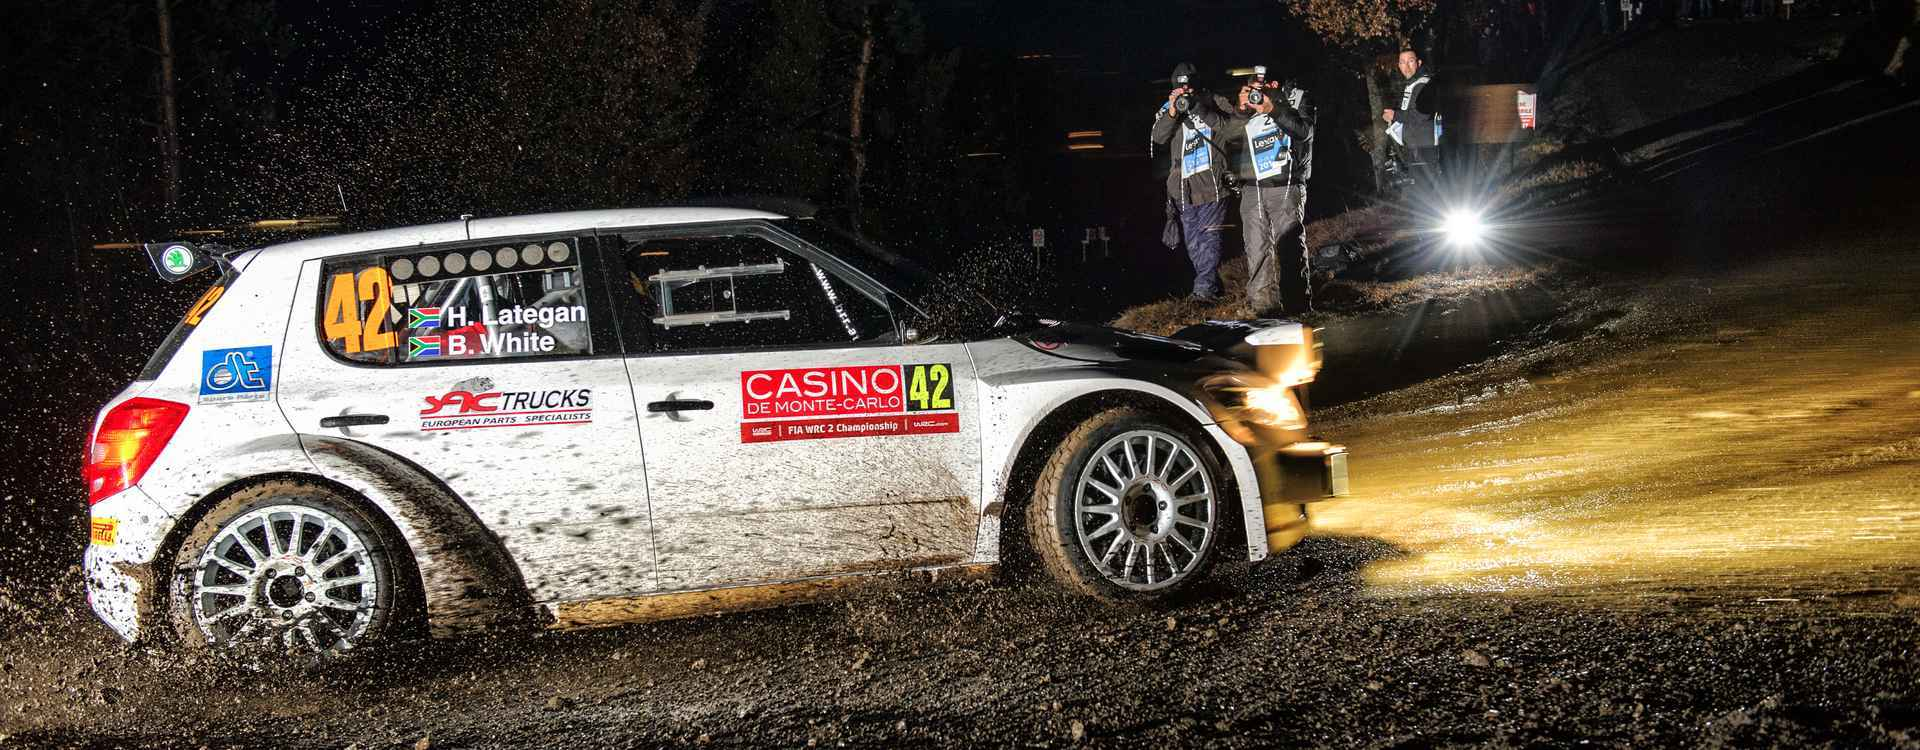 Rallye Monte Carlo: The Adventure in the Mountains